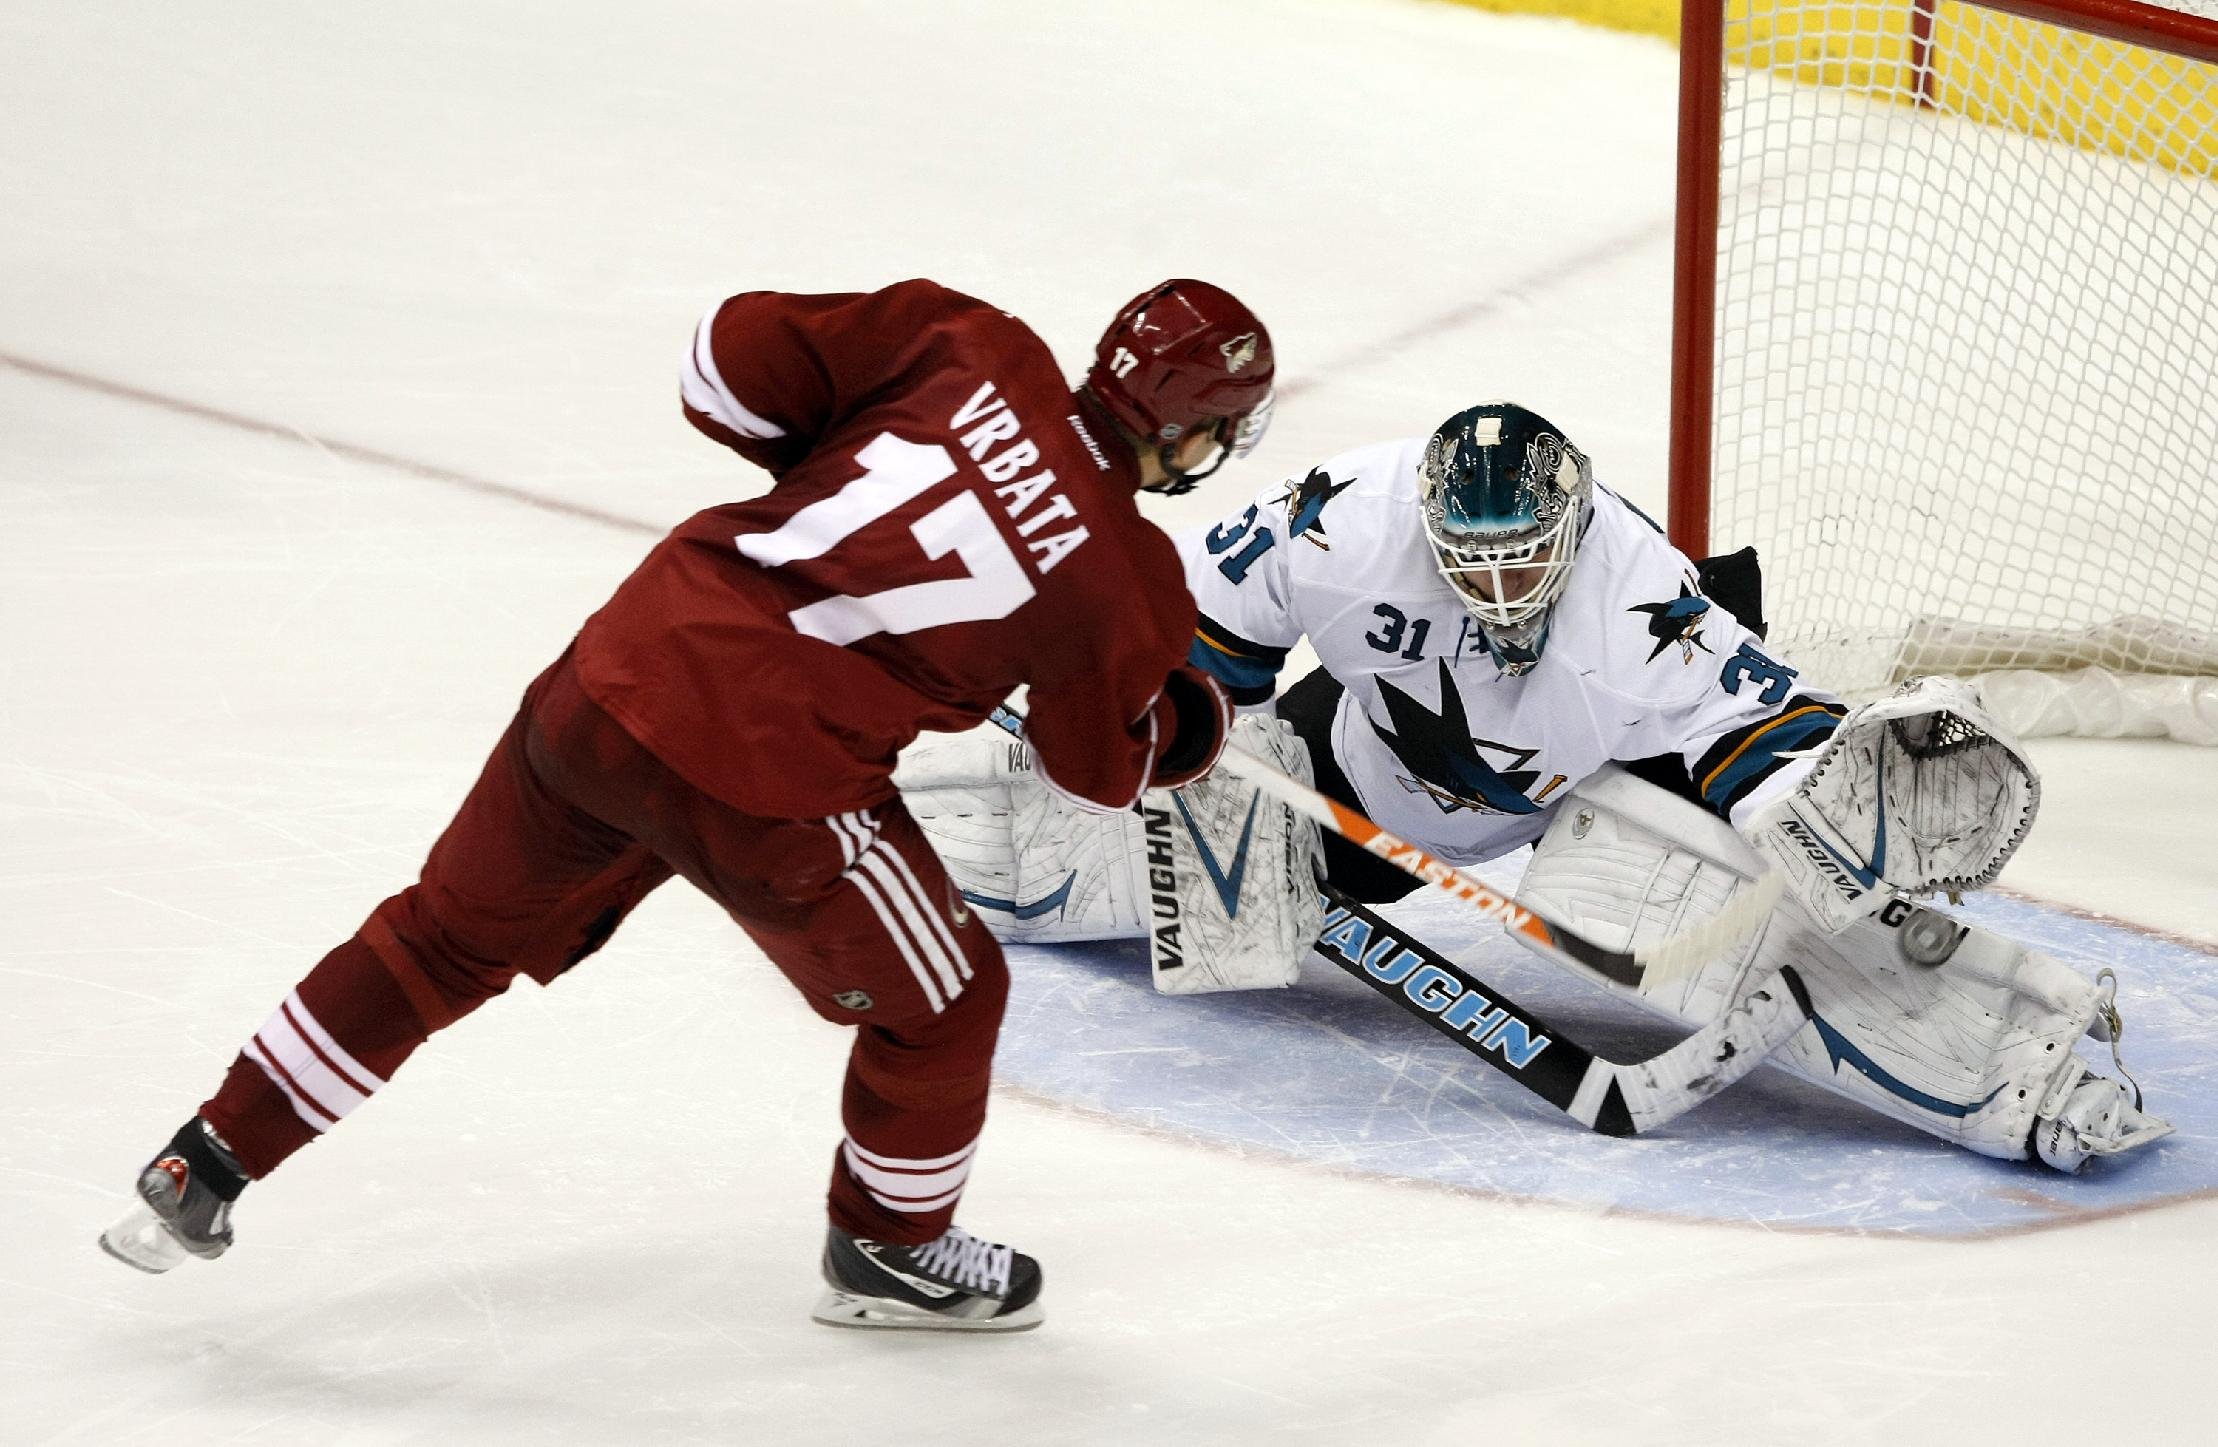 San Jose Sharks goalie Antti Niemi (31) makes the save on Phoenix Coyotes right wing Radim Vrbata (17) in a shoot-out during an NHL hockey game on Friday, Dec. 27, 2013, in Glendale, Ariz. The Sharks defeated the Coyotes in an overtime shoot-out 4-3